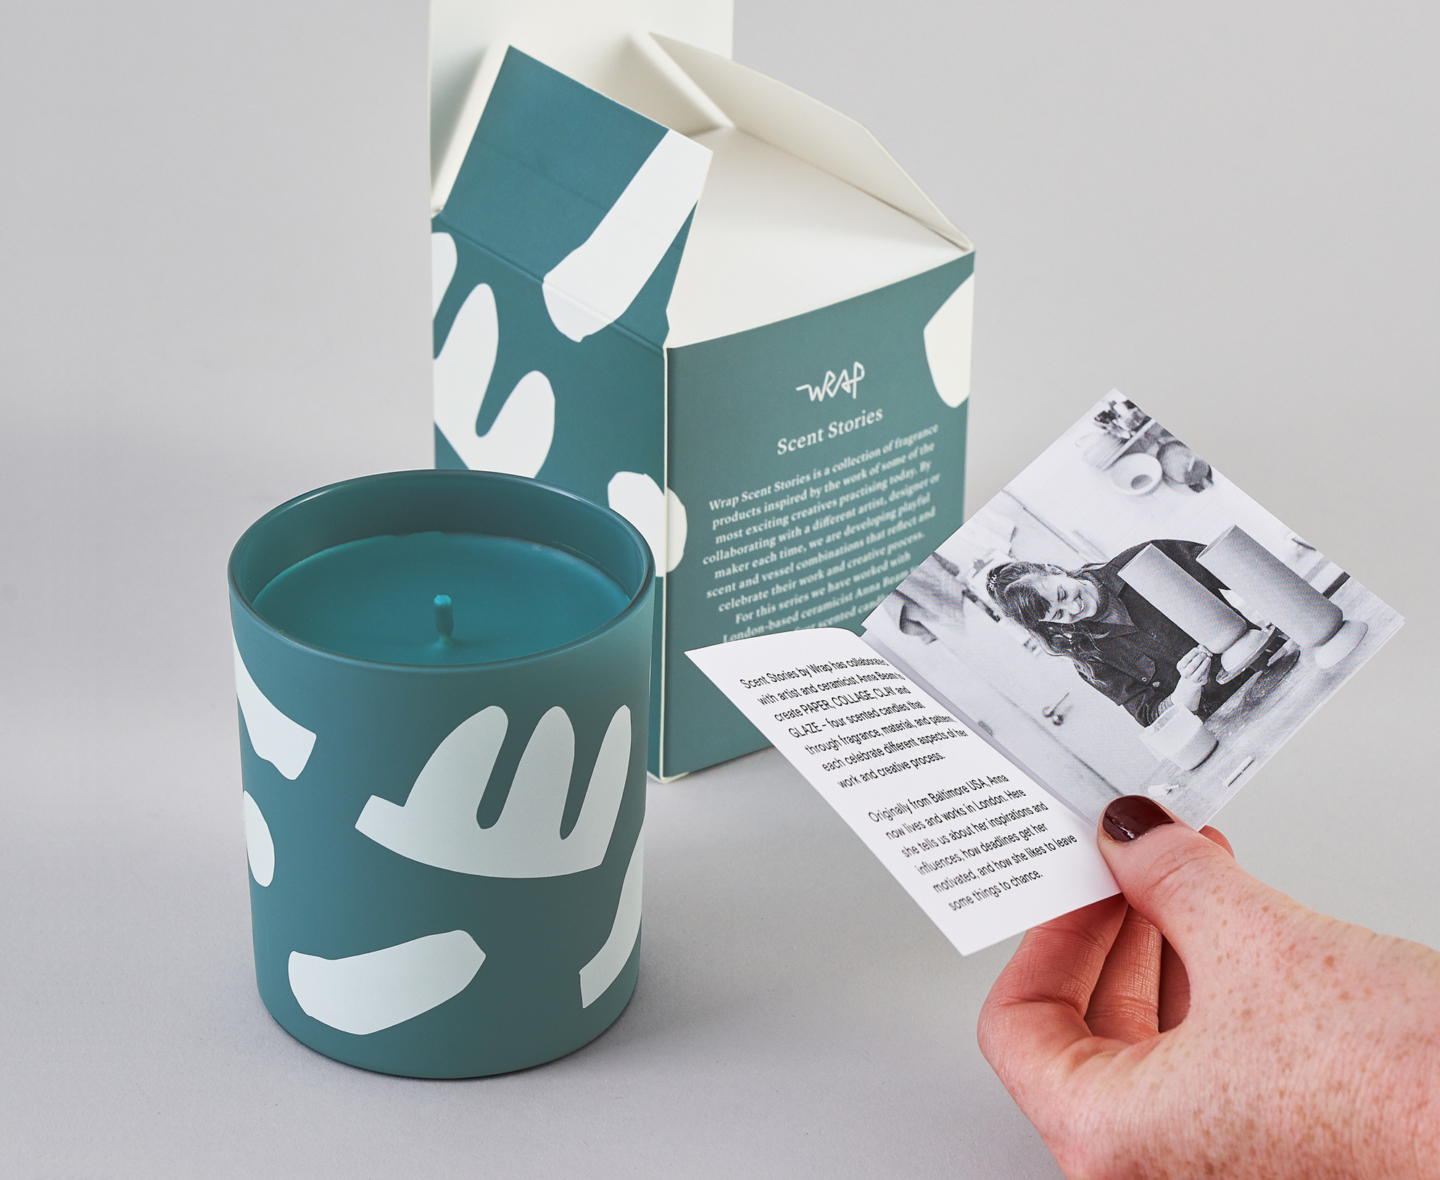 Wrap graphic design magazine scented candle